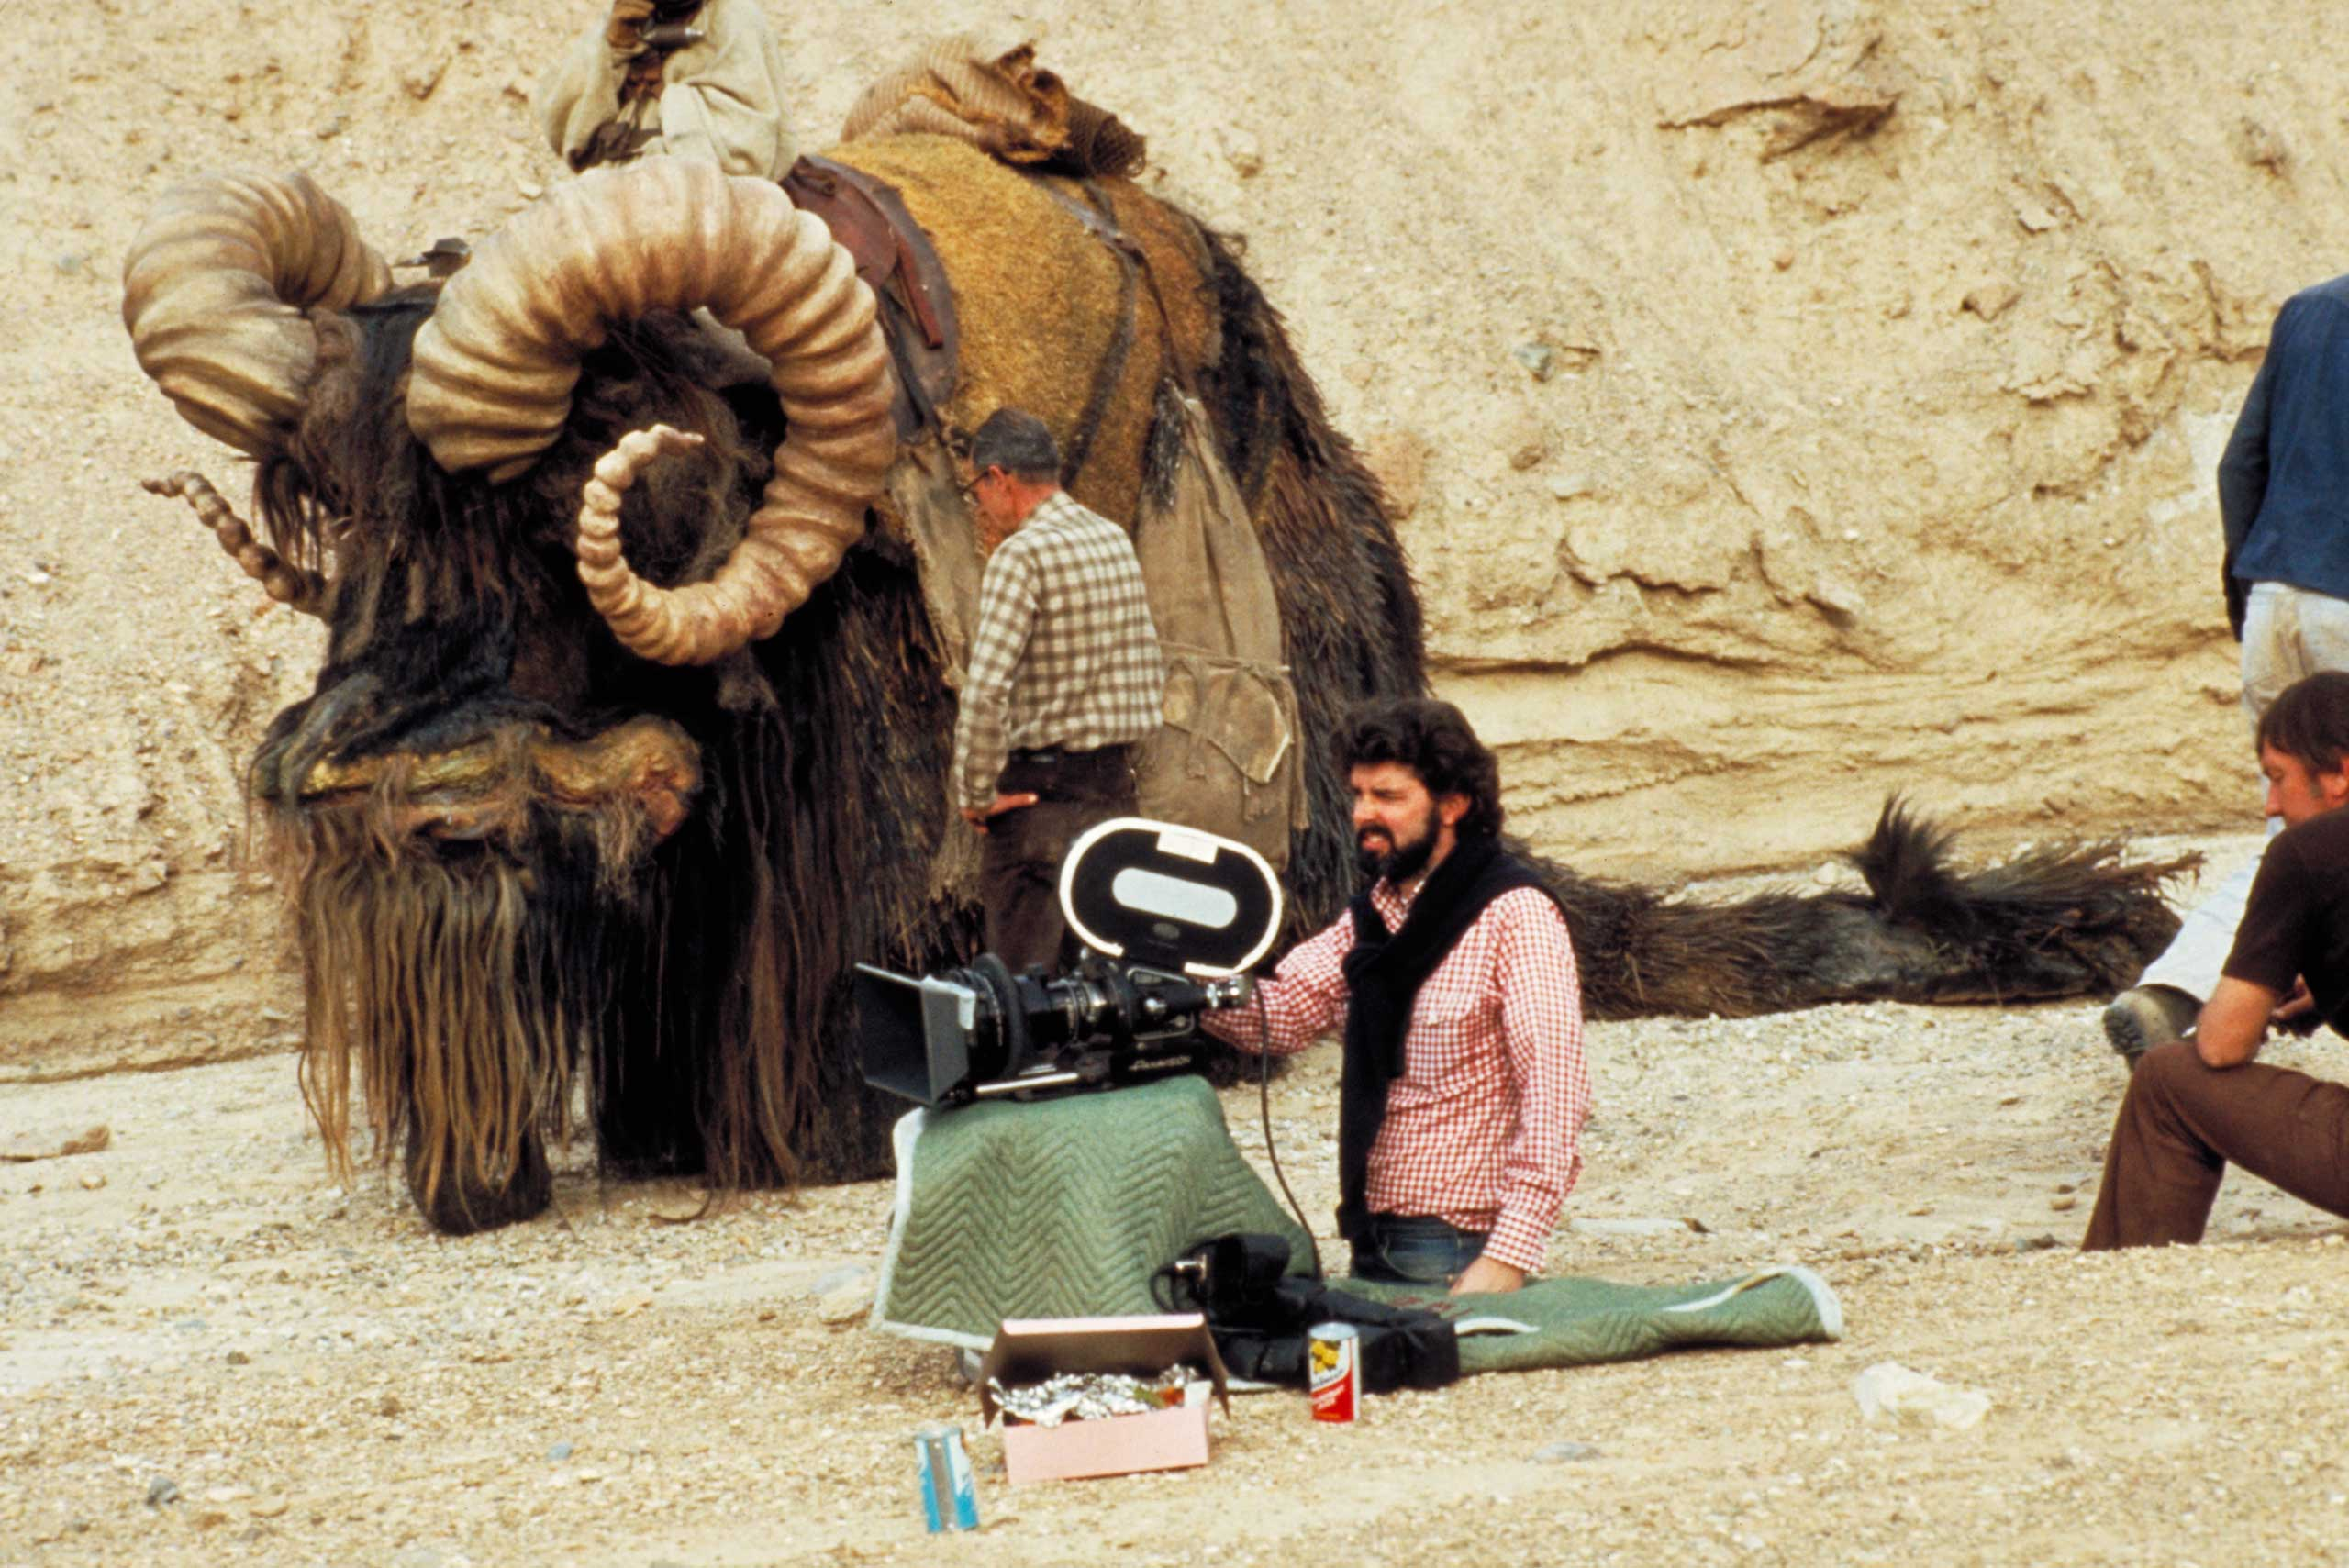 Lucas sets up camp next to a Bantha on the set of Episode IV.